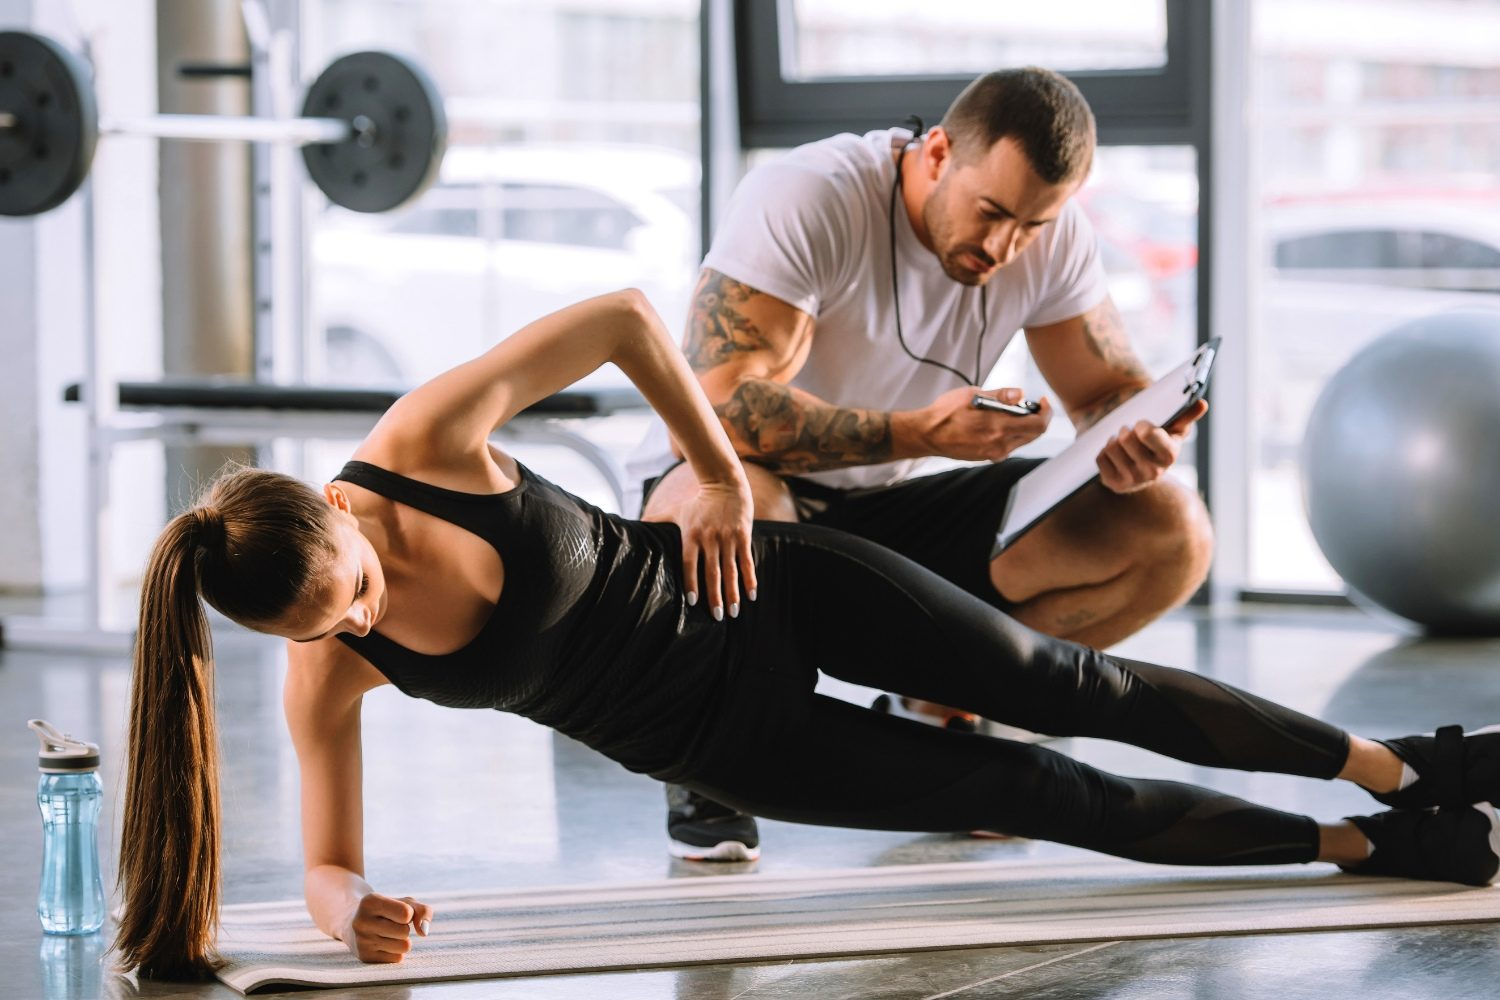 How to Hire Quality Personal Trainer at Your Gym - Techeduhp